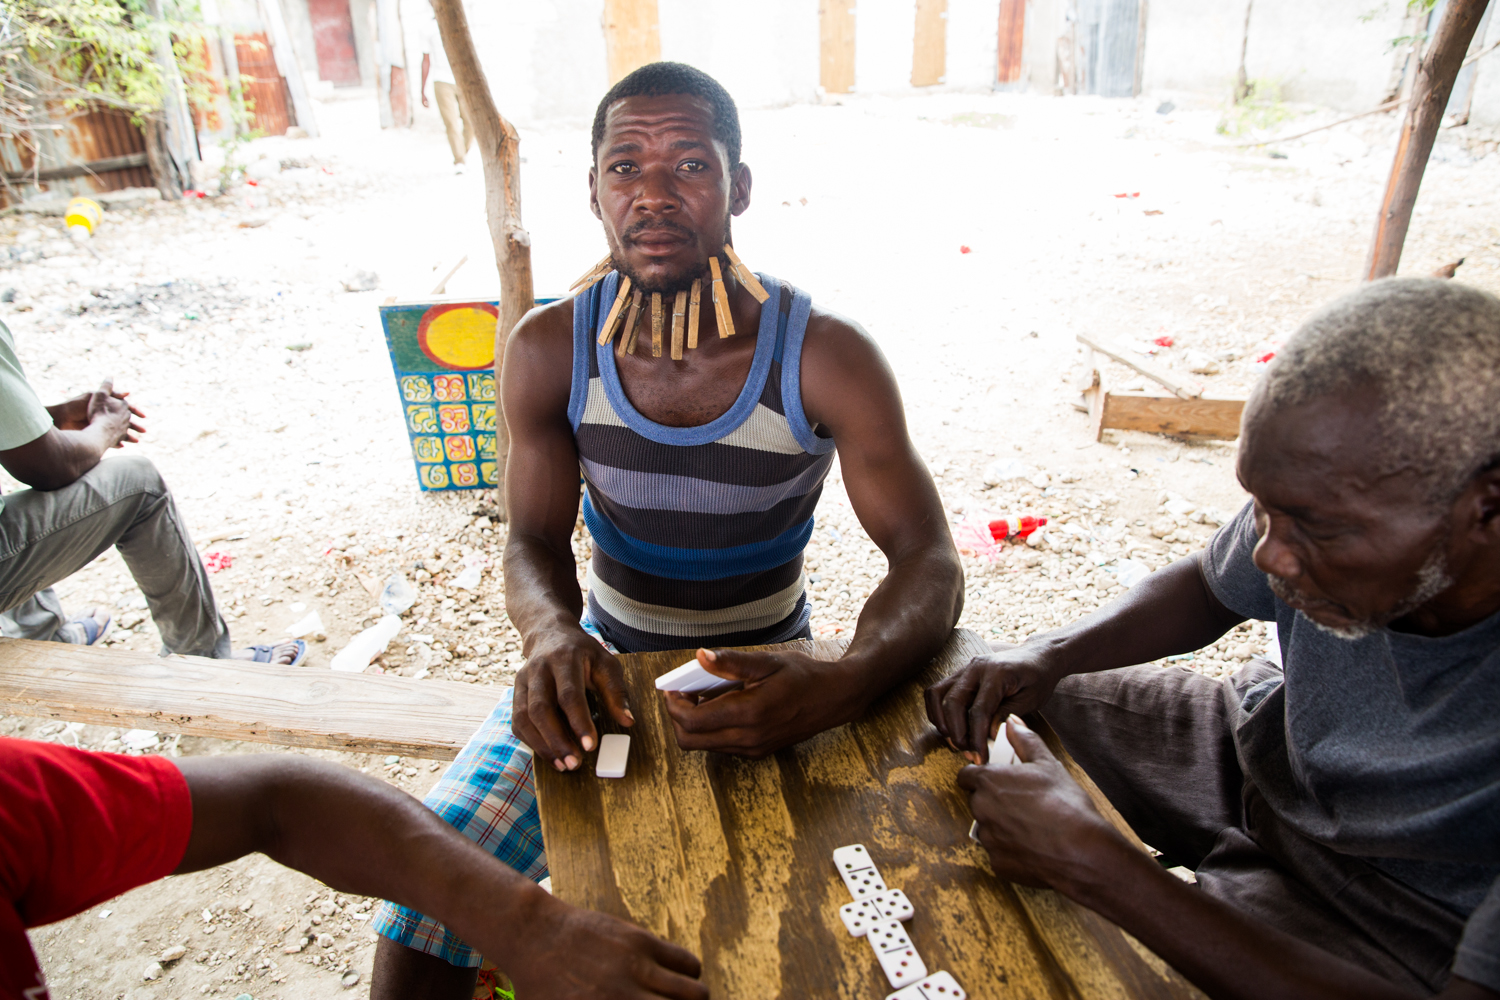 A man plays bourik in Croix-des- Bouquets. Bourik is Haitian dominos. If you lose, you put a close pin on your face.